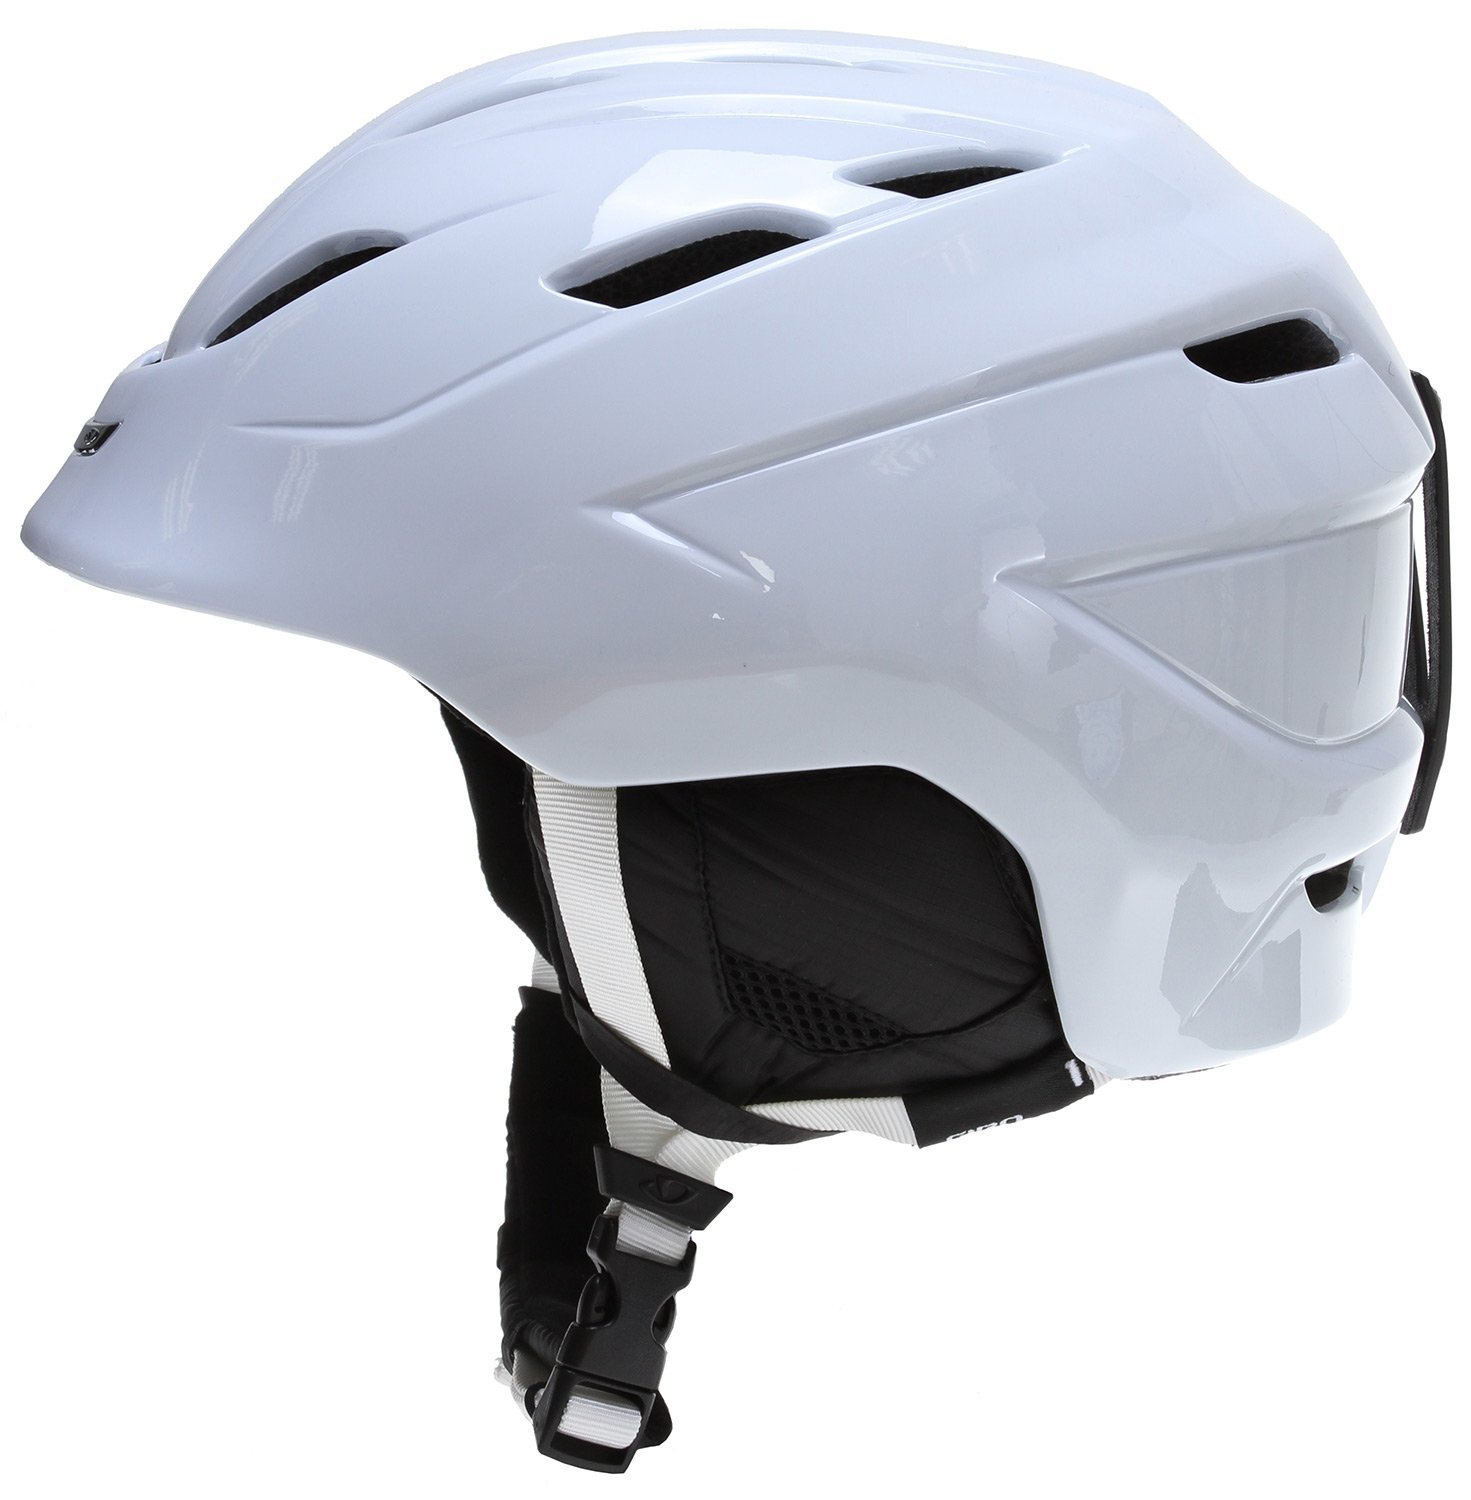 Giro Nine.10 Snow Helmet with 14 Super Cool Vents, In-Mold Construction, Available in Multiple Sizes